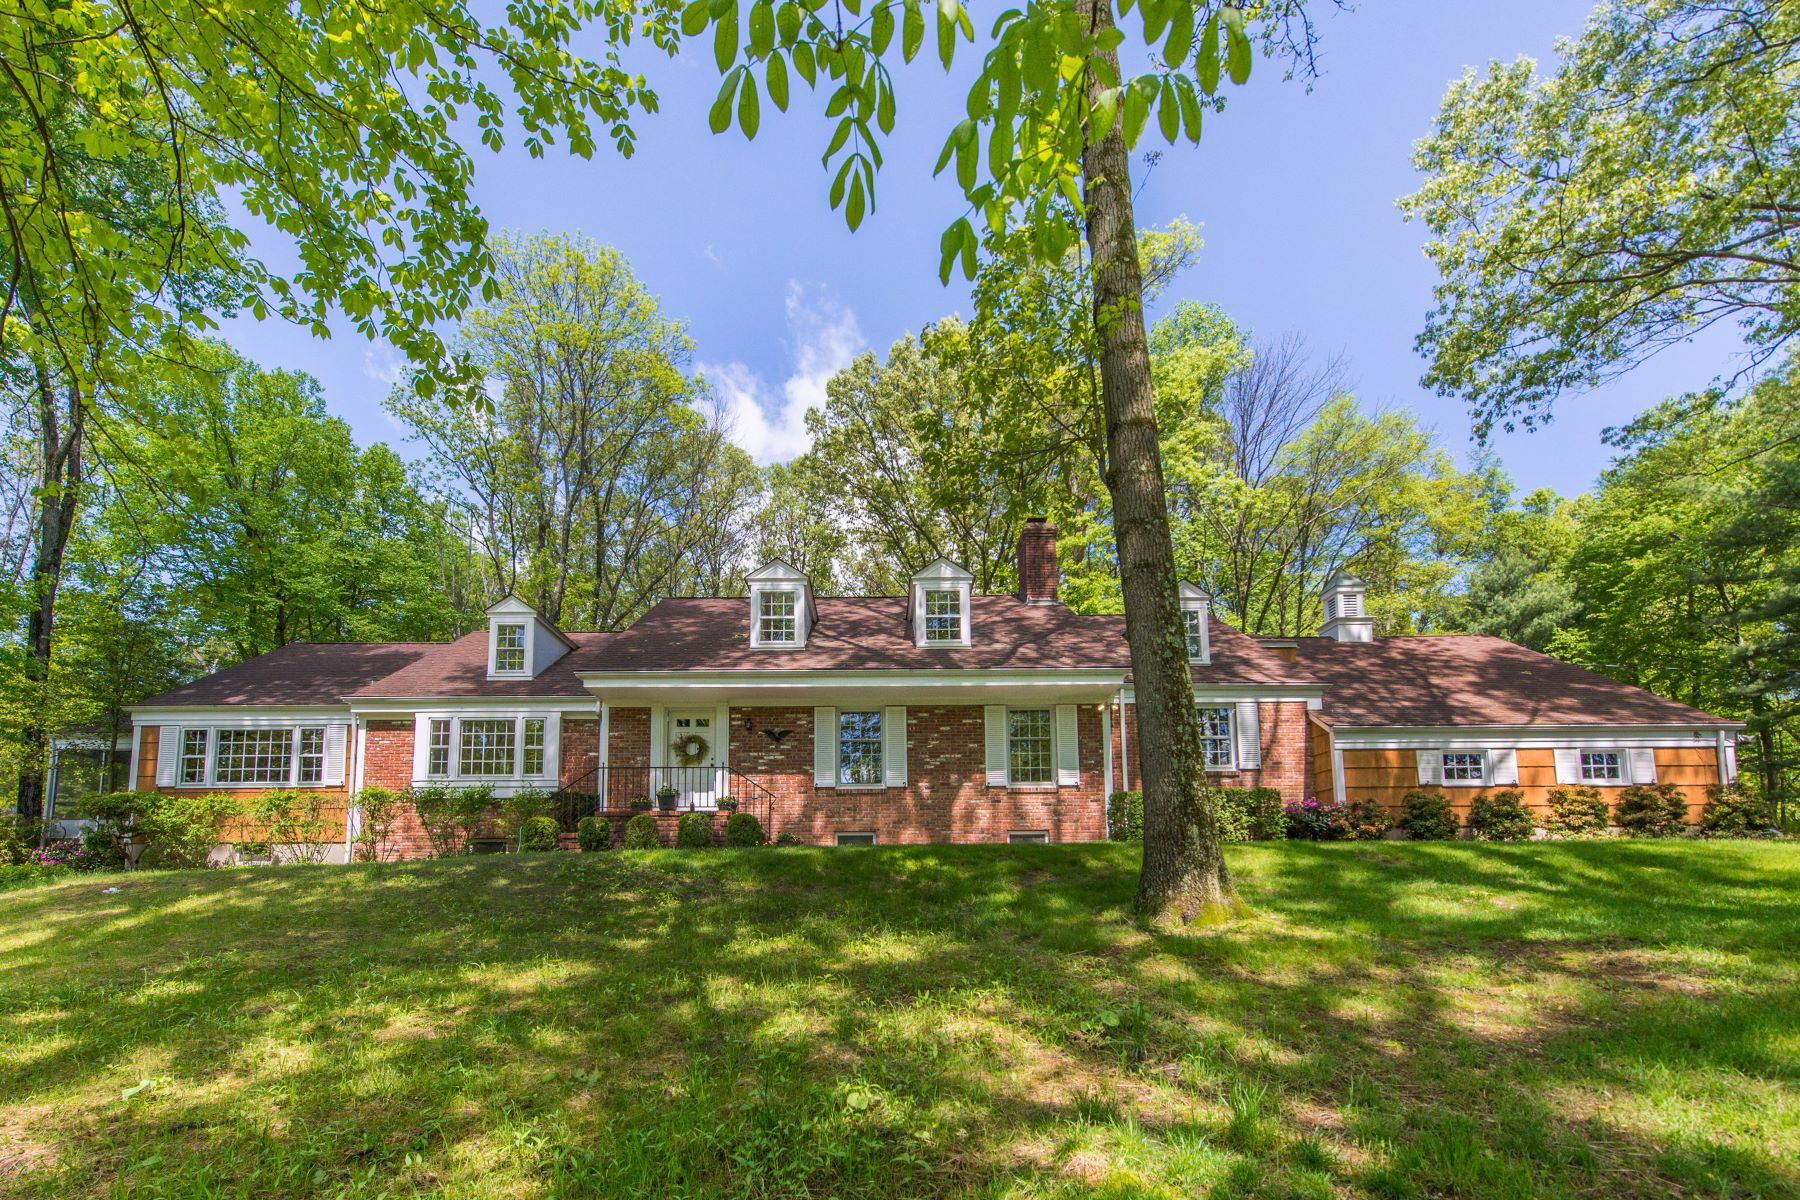 Single Family Homes for Sale at Spacious Colonial 54 Post House Road Harding Township, New Jersey 07976 United States